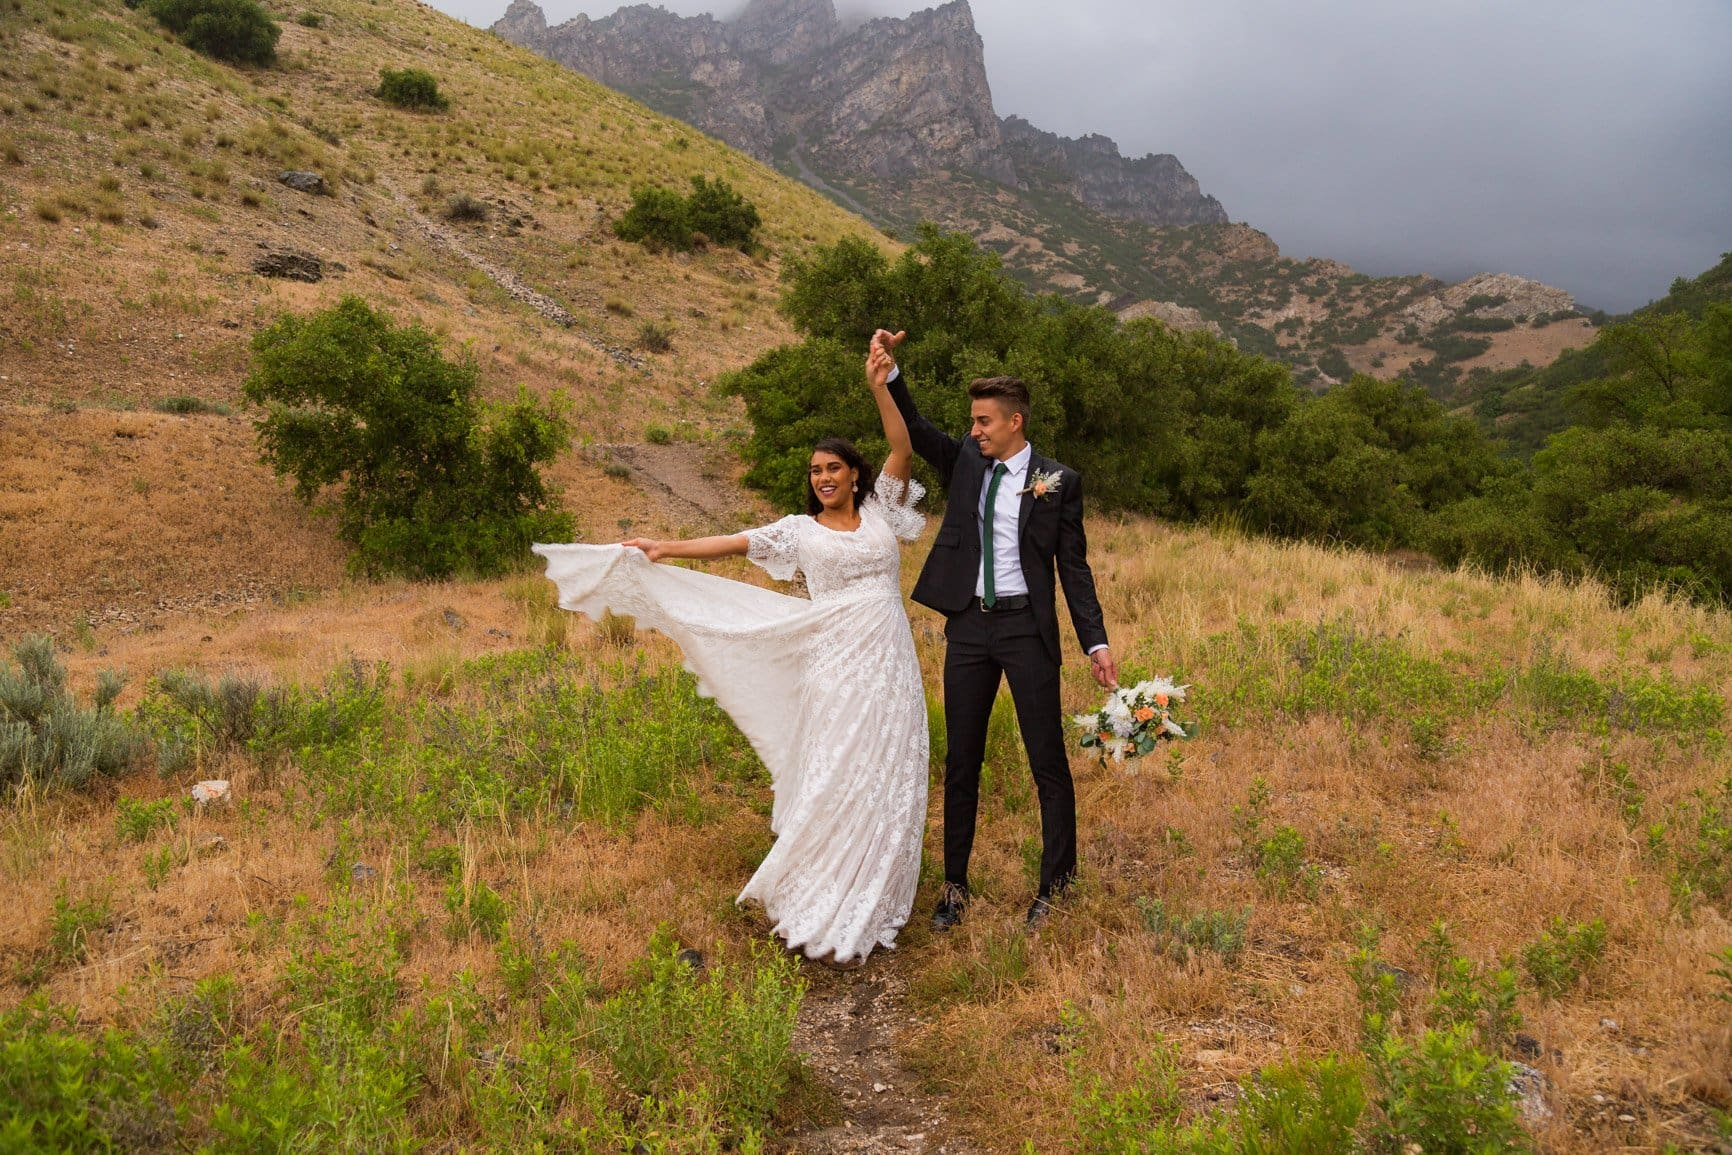 couple dances in the rain during their vow renewal in the storm